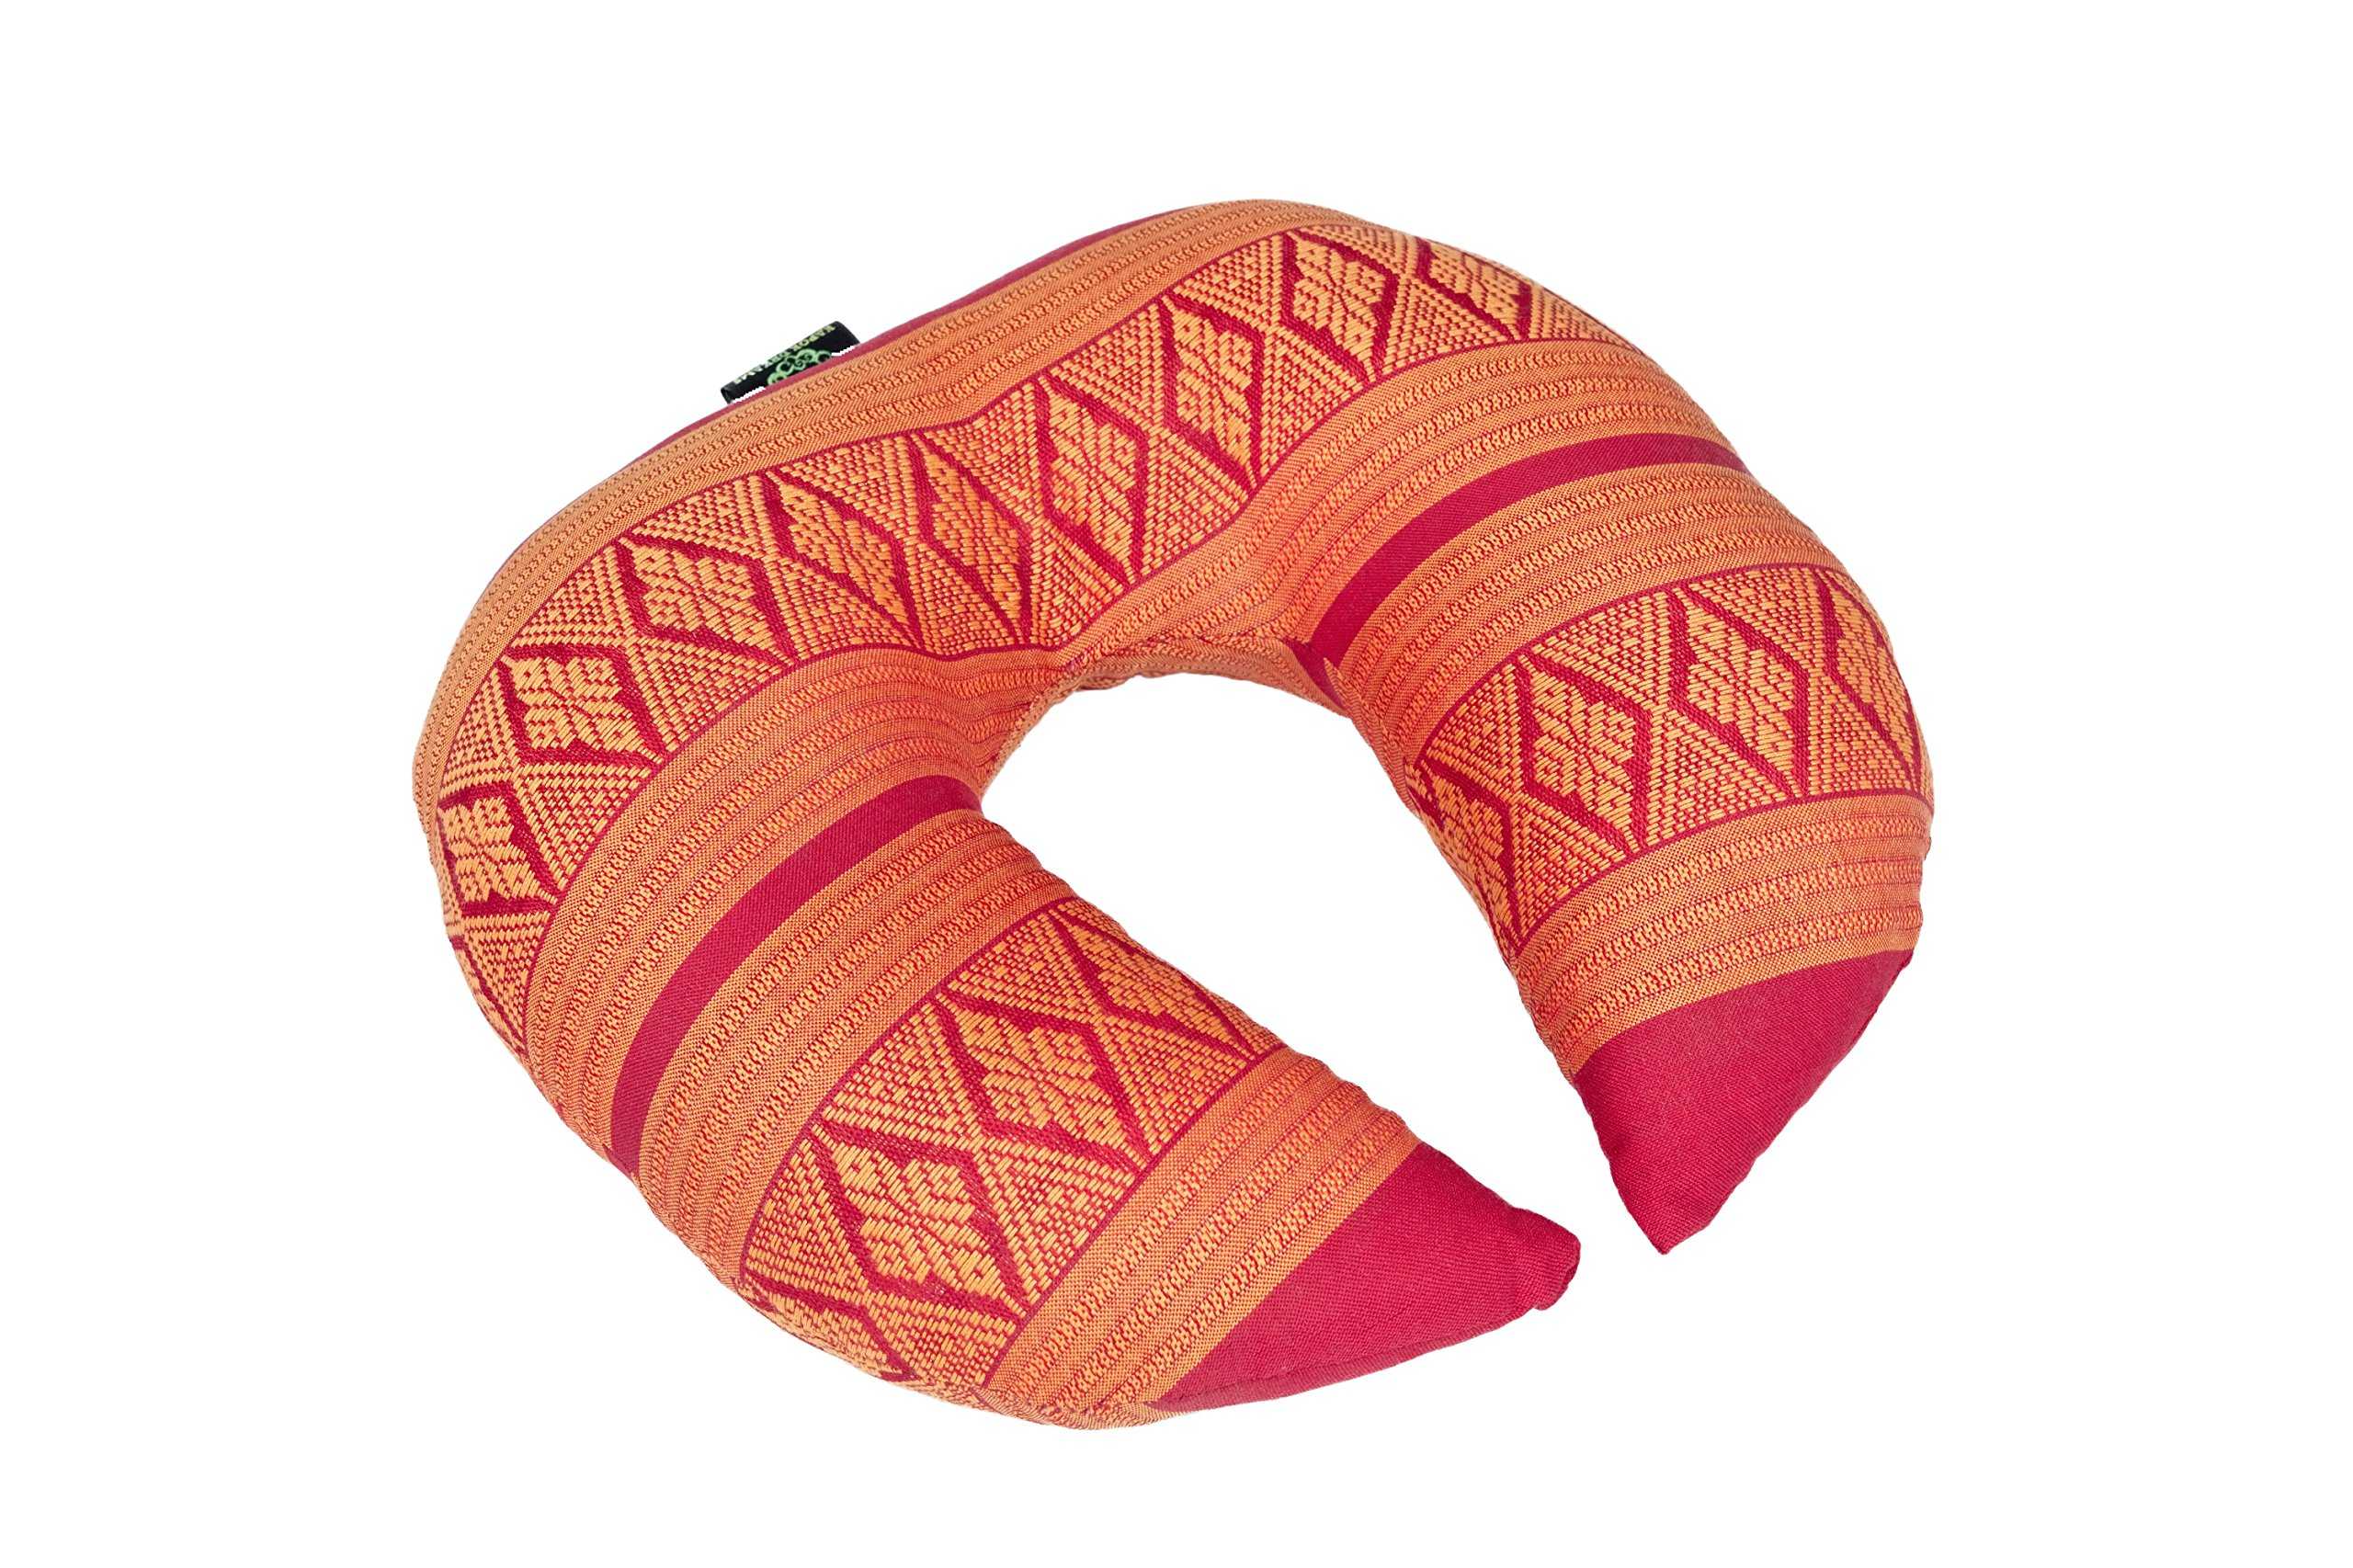 Face Cradle Cushion, 12''x11''x4'', Massage Pillow 100% Kapok Filled Head Rest Orange & Red Thai Design.Neck Cushion by Kapok Dreams